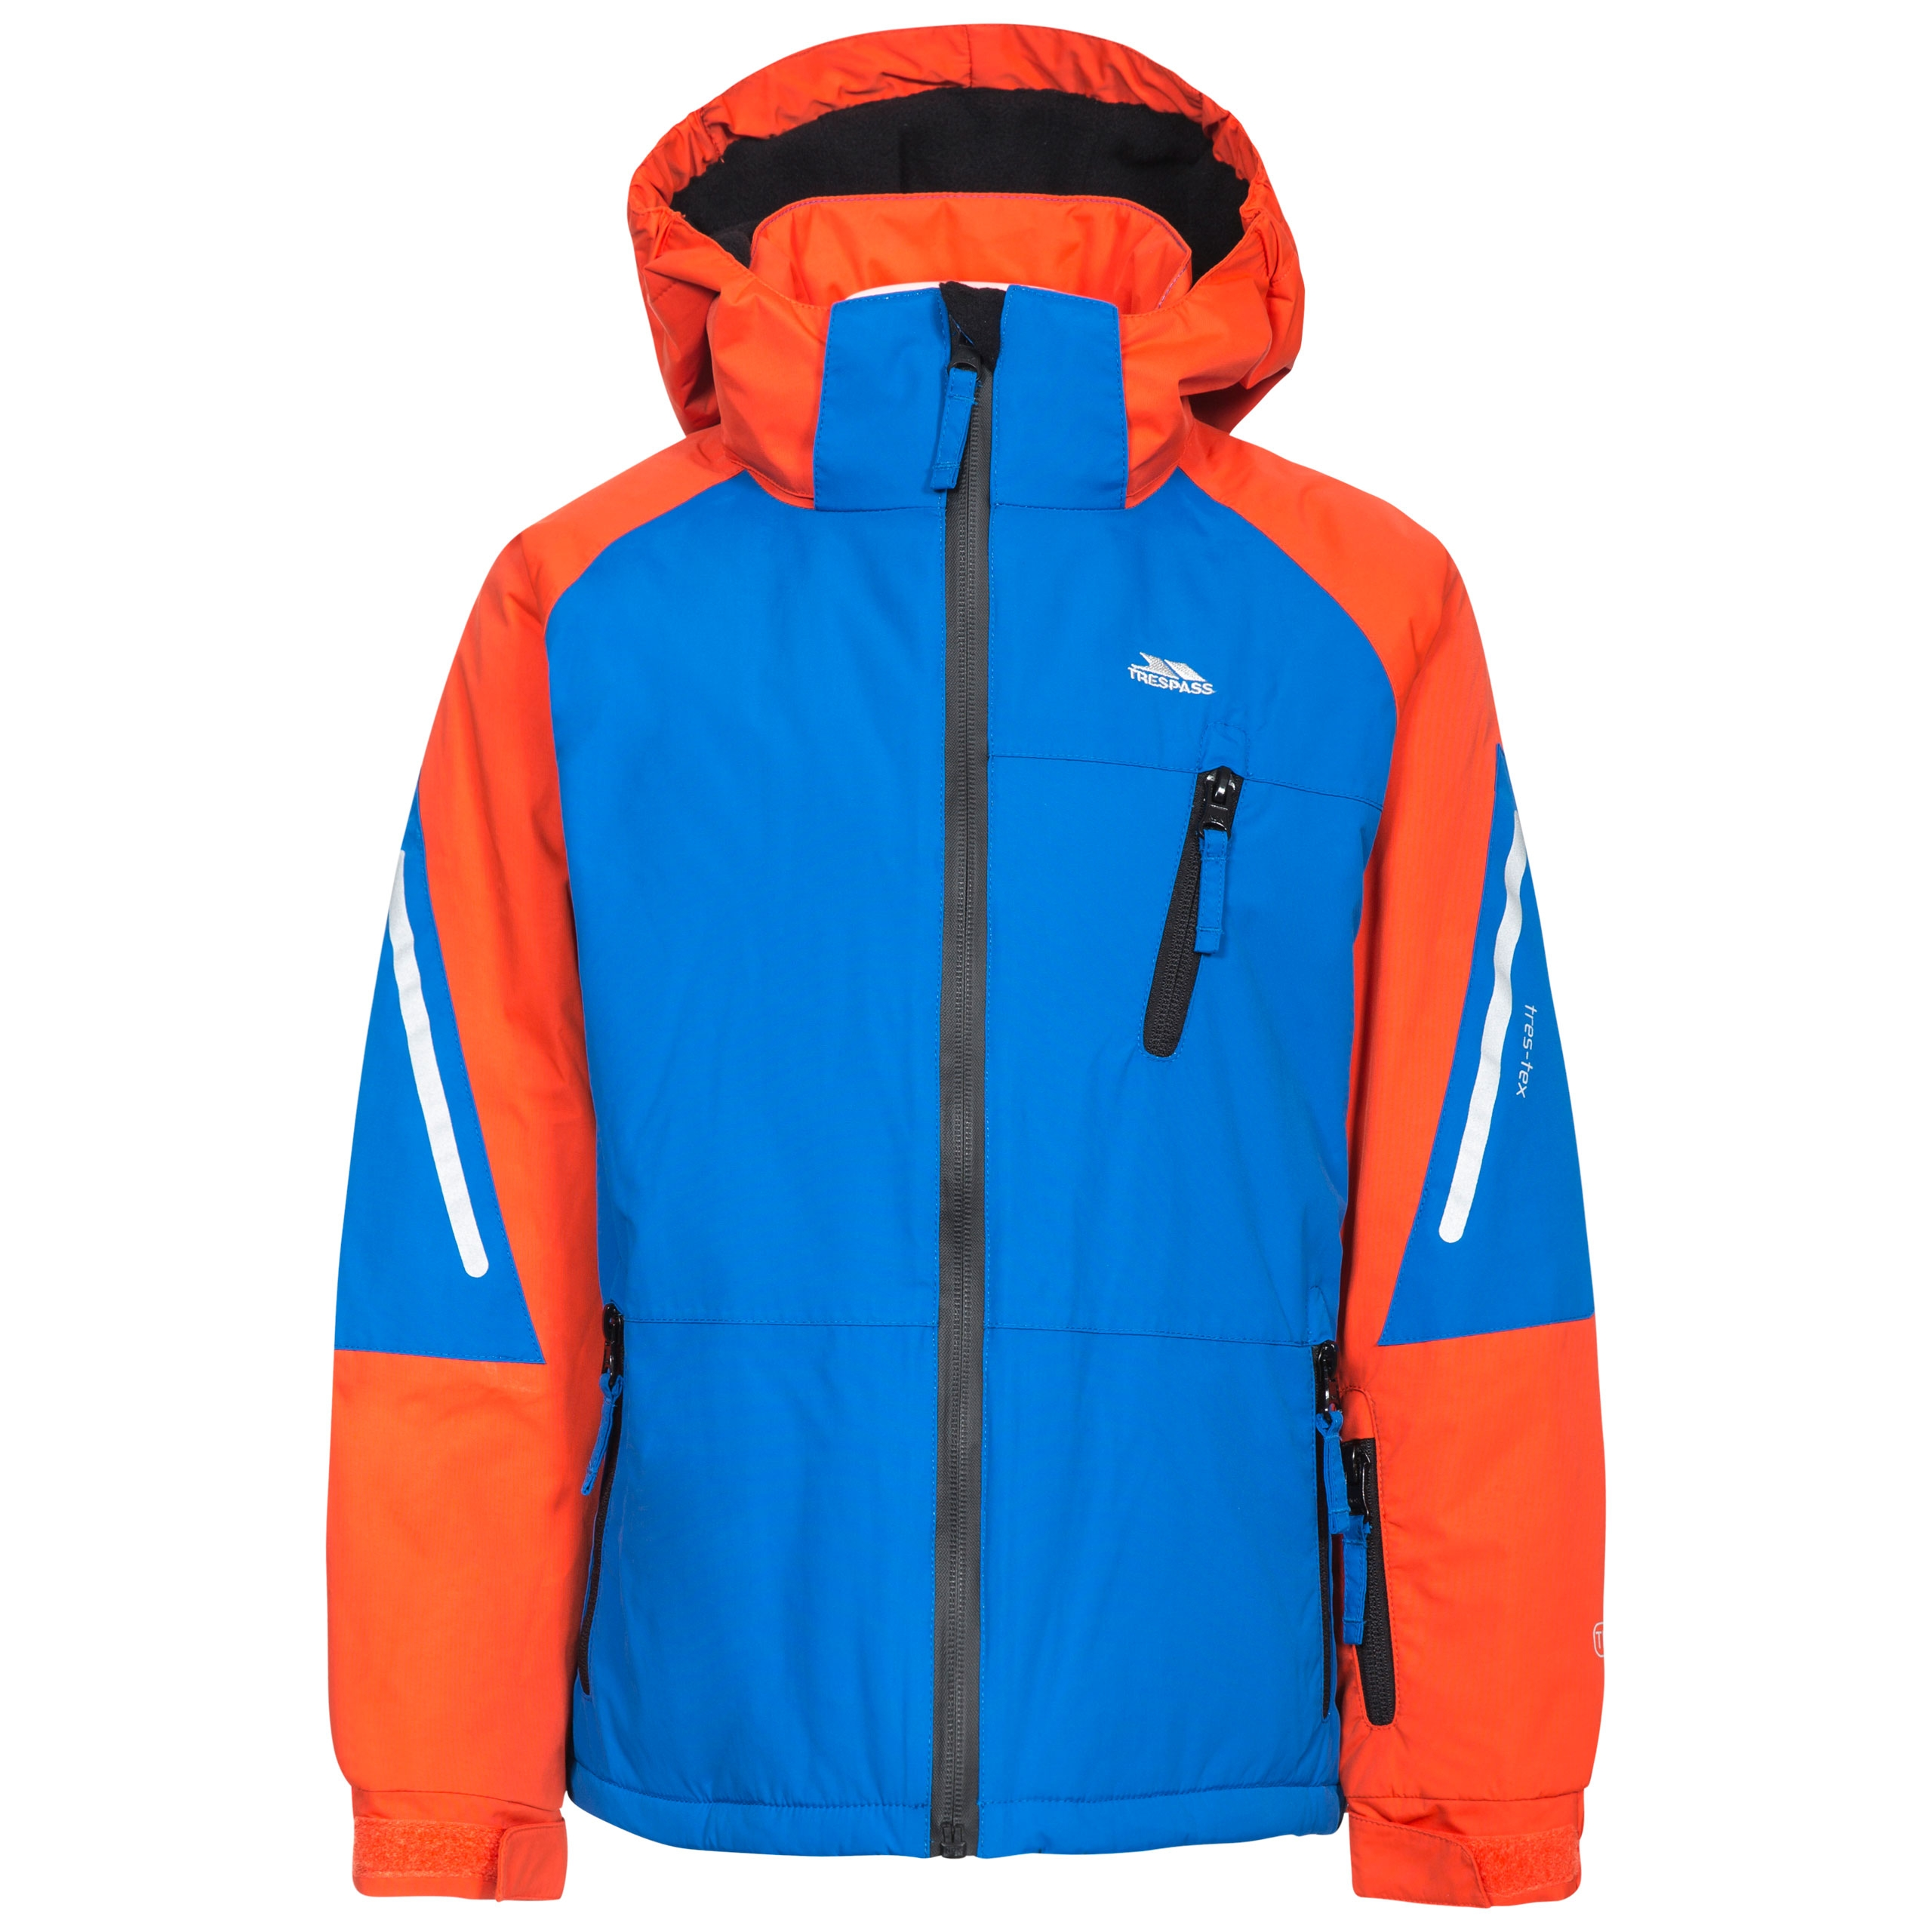 333162ad44 Debunk Boys  Windproof Waterproof Insulated Ski Jacket